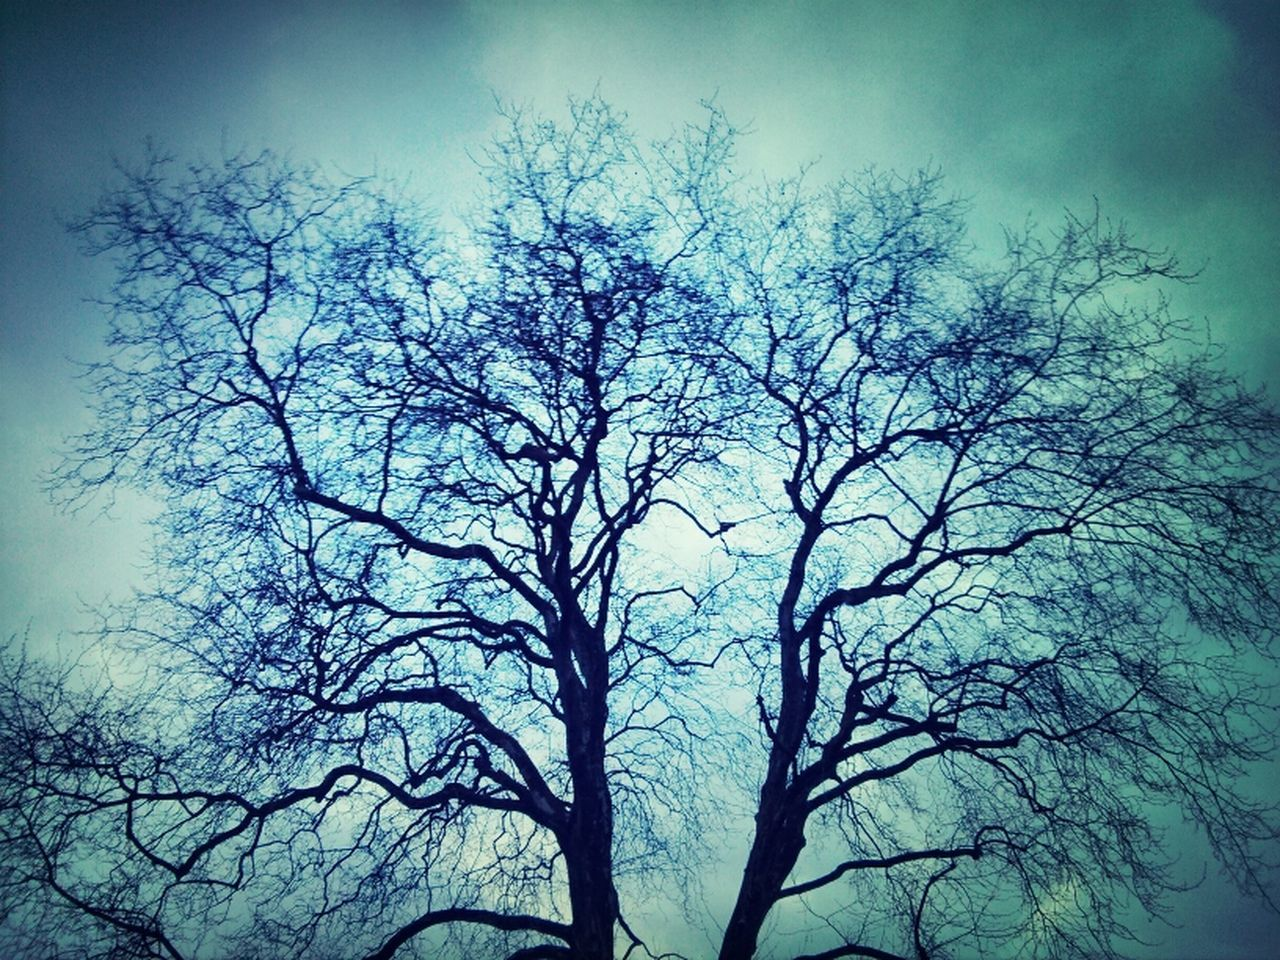 nature, low angle view, beauty in nature, branch, tree, tranquility, no people, bare tree, sky, outdoors, scenics, day